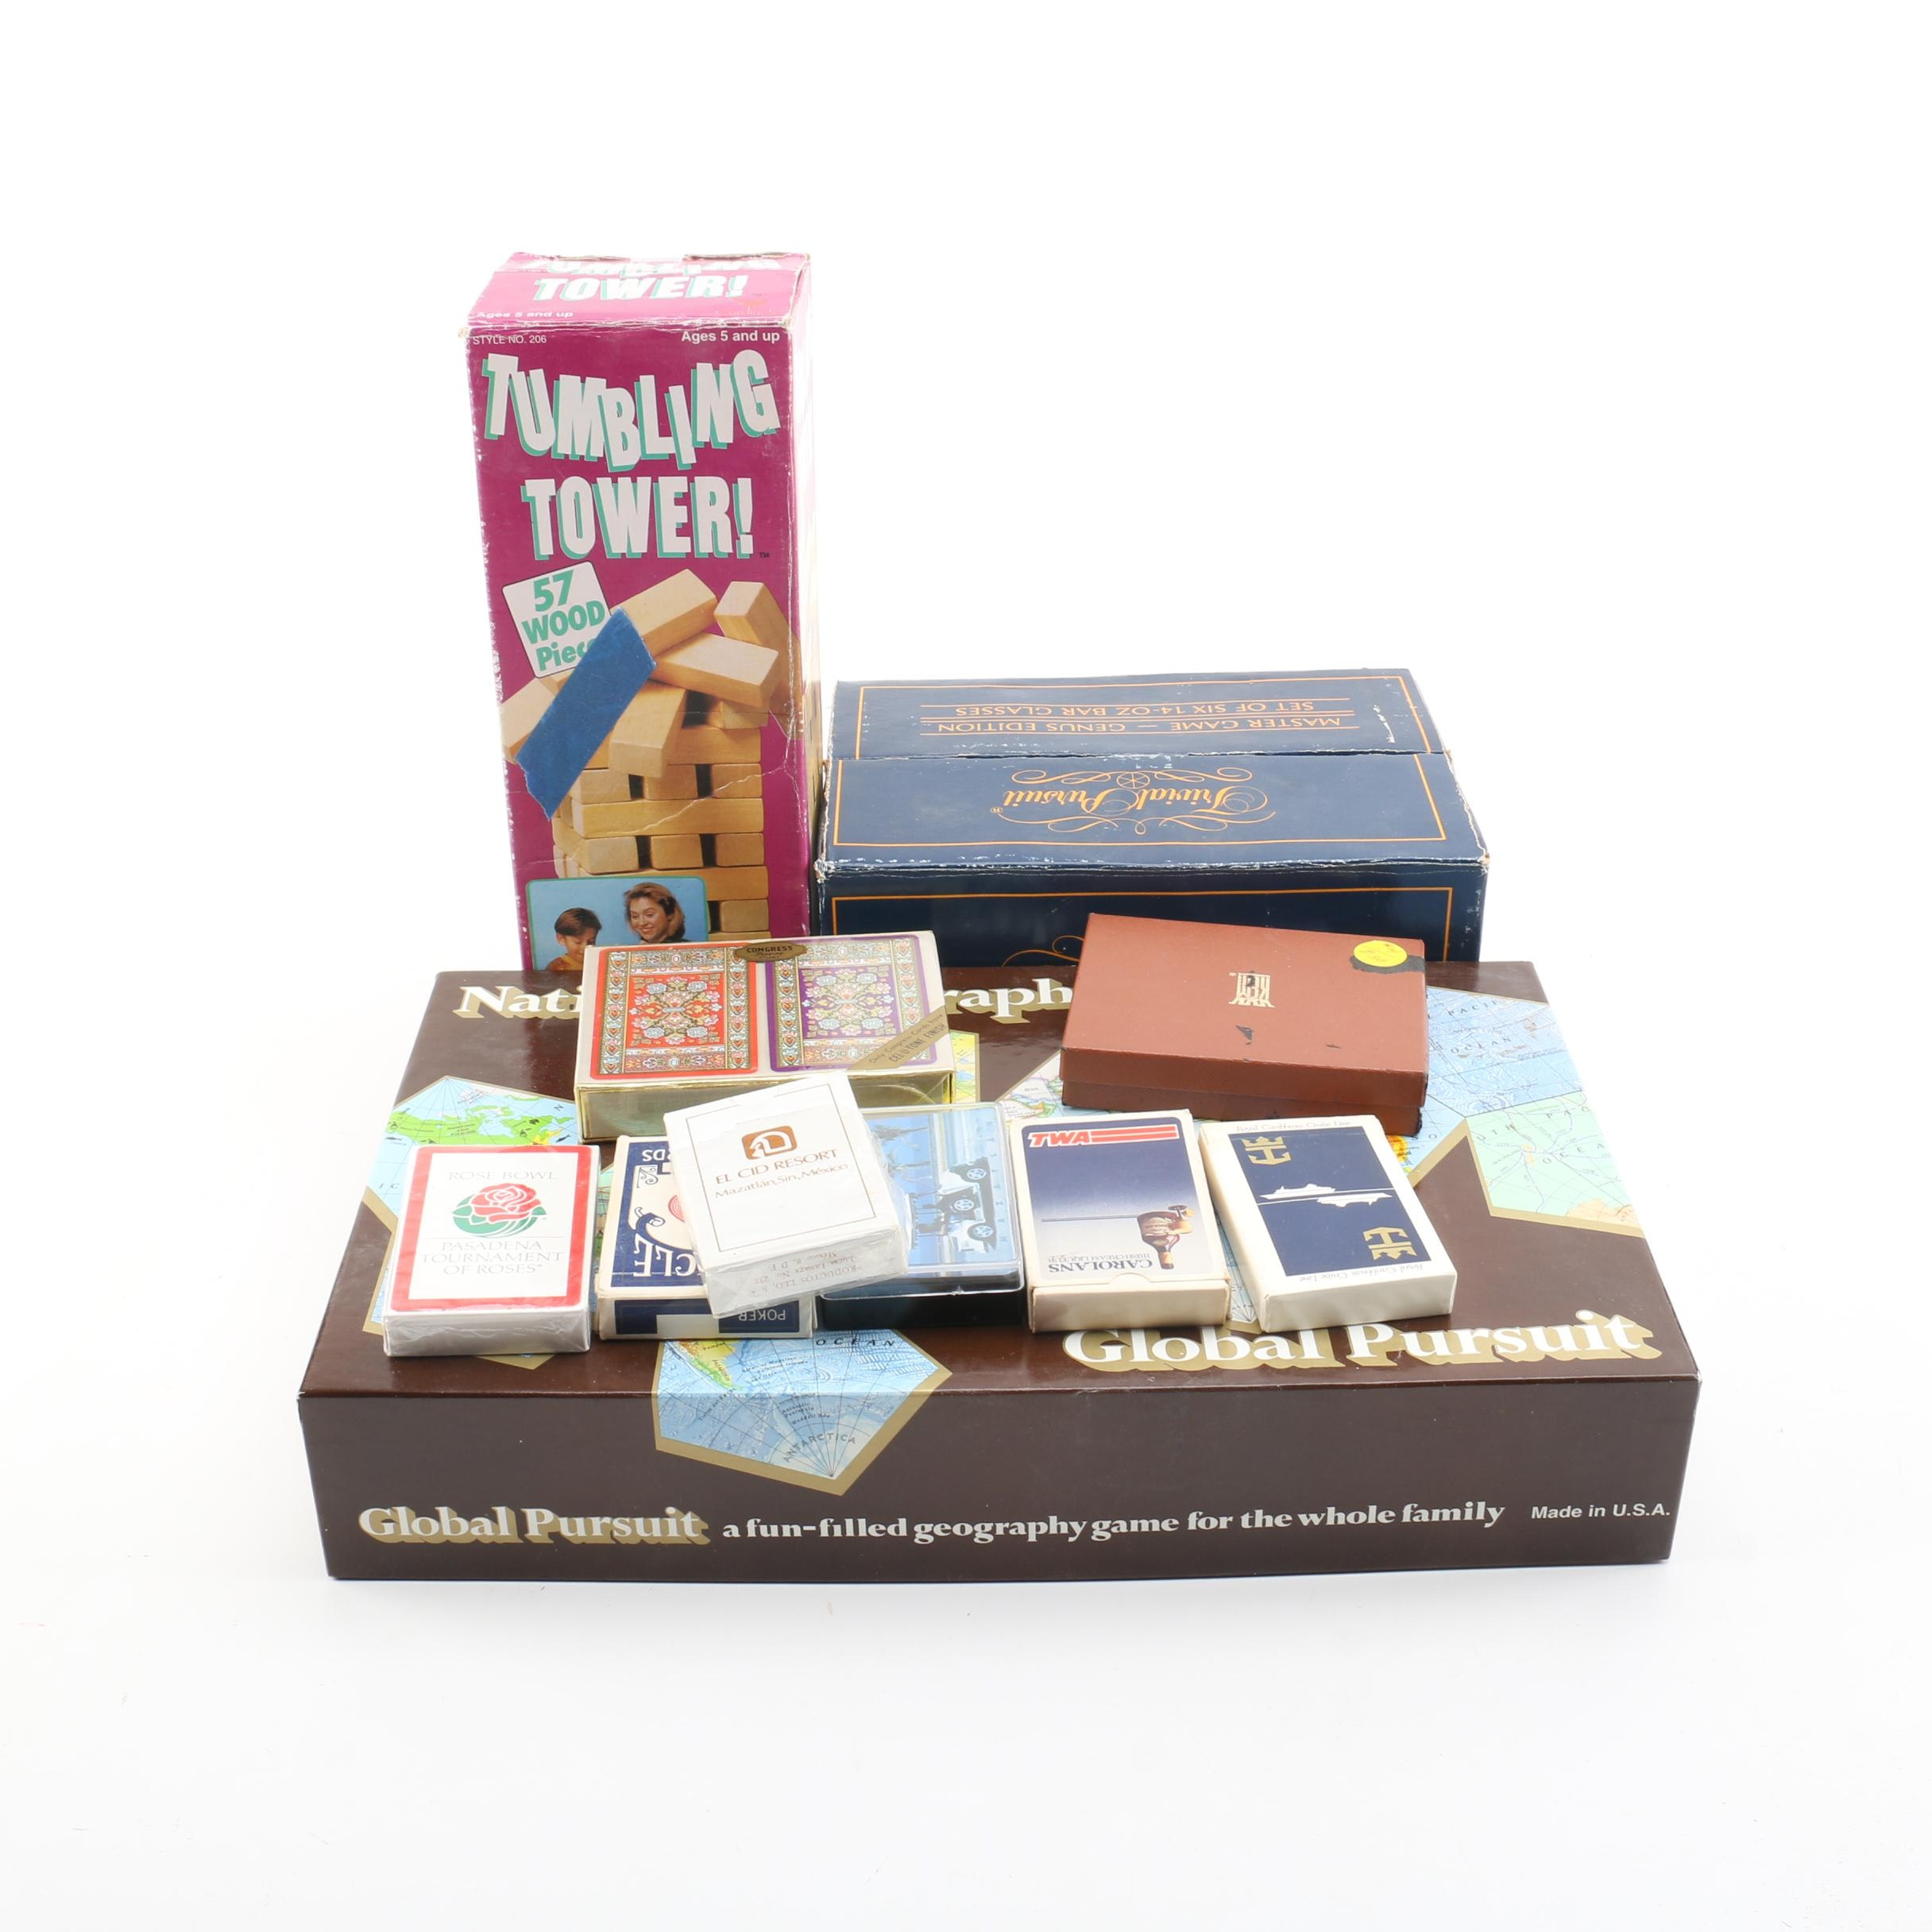 National Geographic Board Game, Trivial Pursuit Bar Glasses, and More